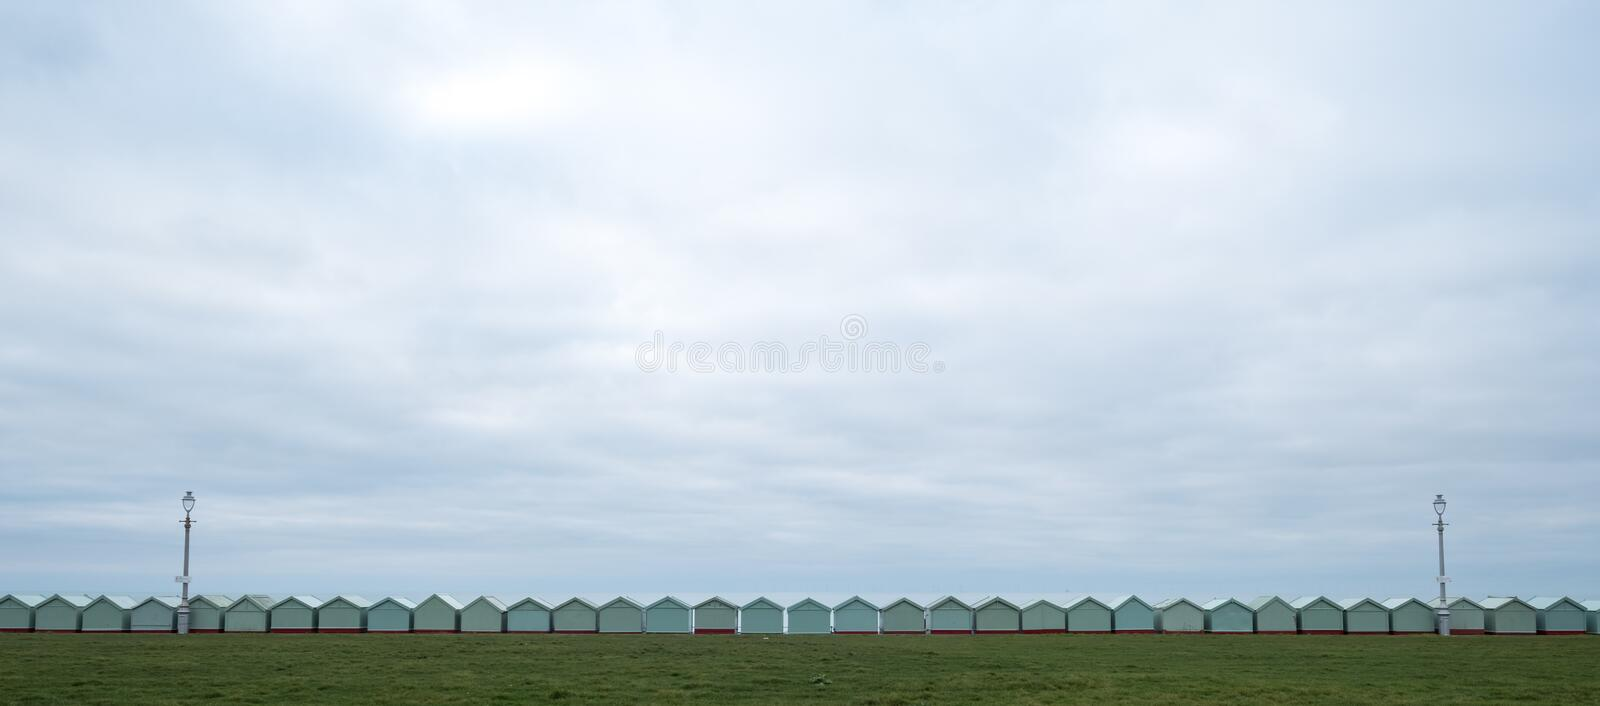 Row of beach huts on the sea front in Hove, Sussex UK. Row of beach huts on the sea front in Hove, East Sussex uK stock photo